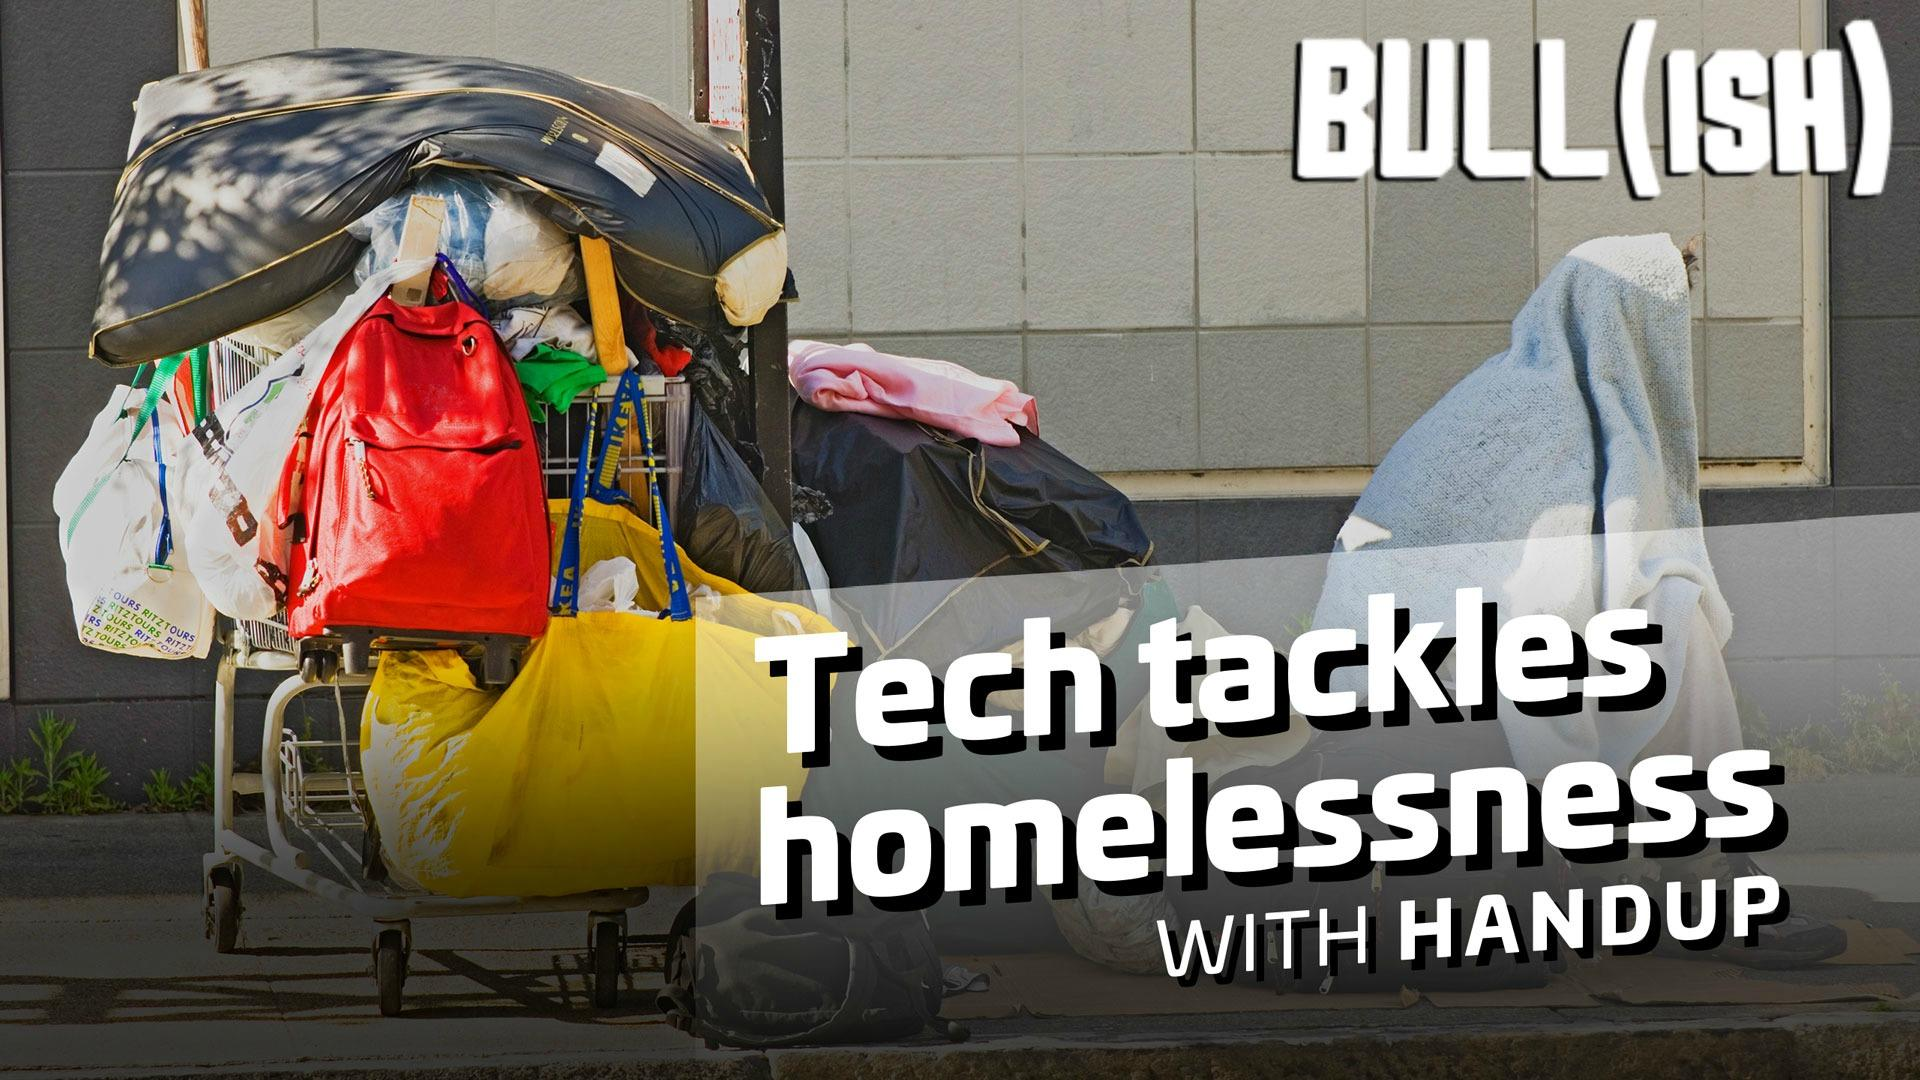 Tech tackling homelessness | Bullish